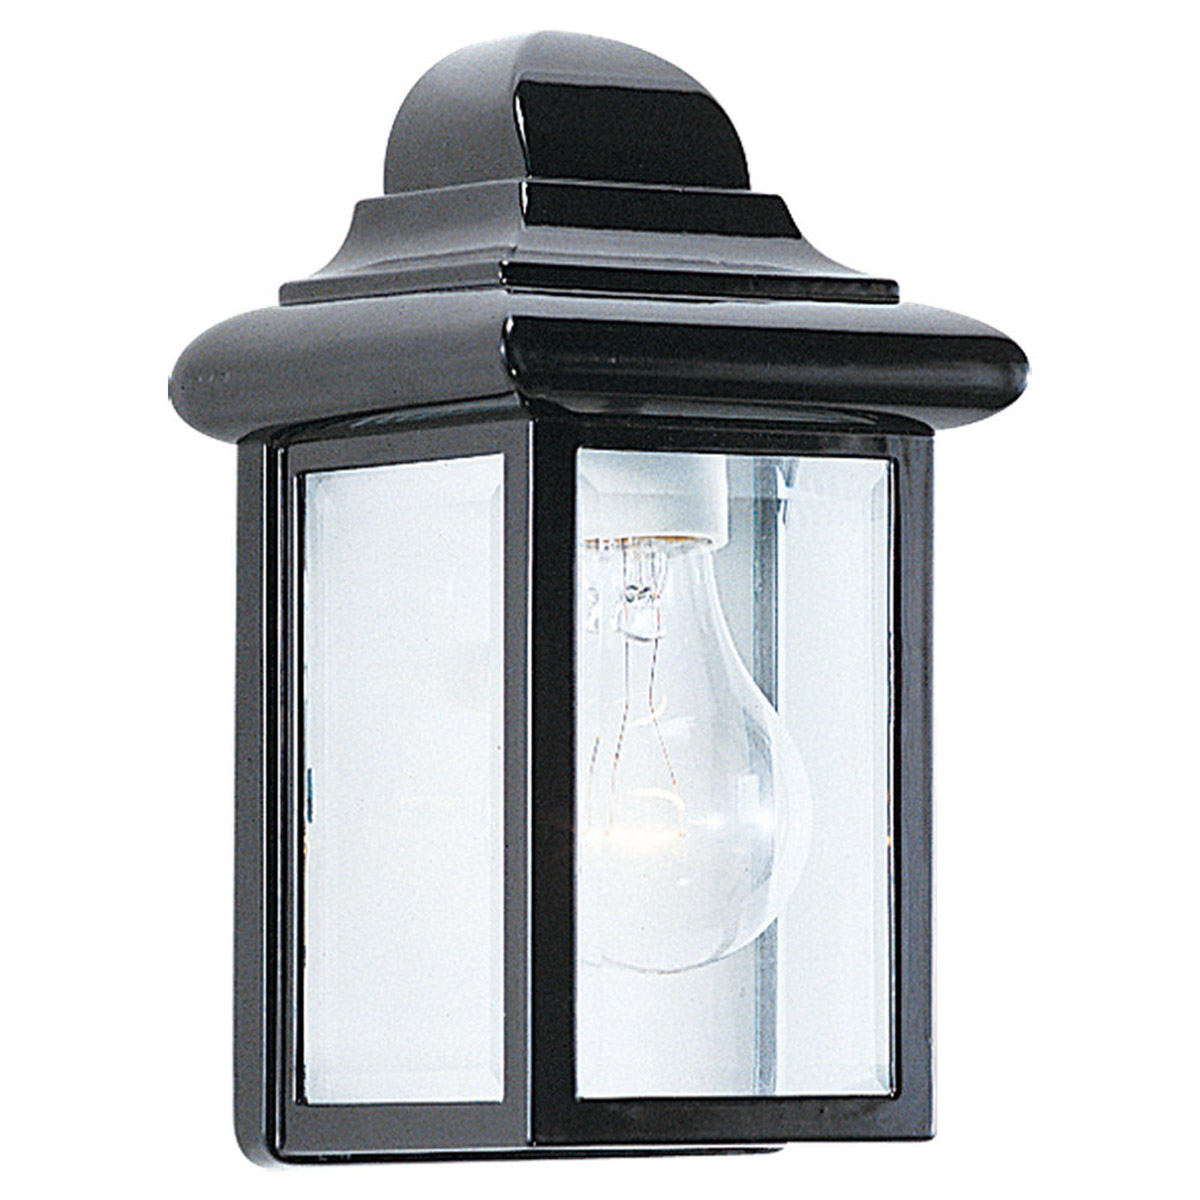 Sea Gull Lighting Mullberry Hill 1 Light Outdoor Wall Lantern in Black 8588-12 photo